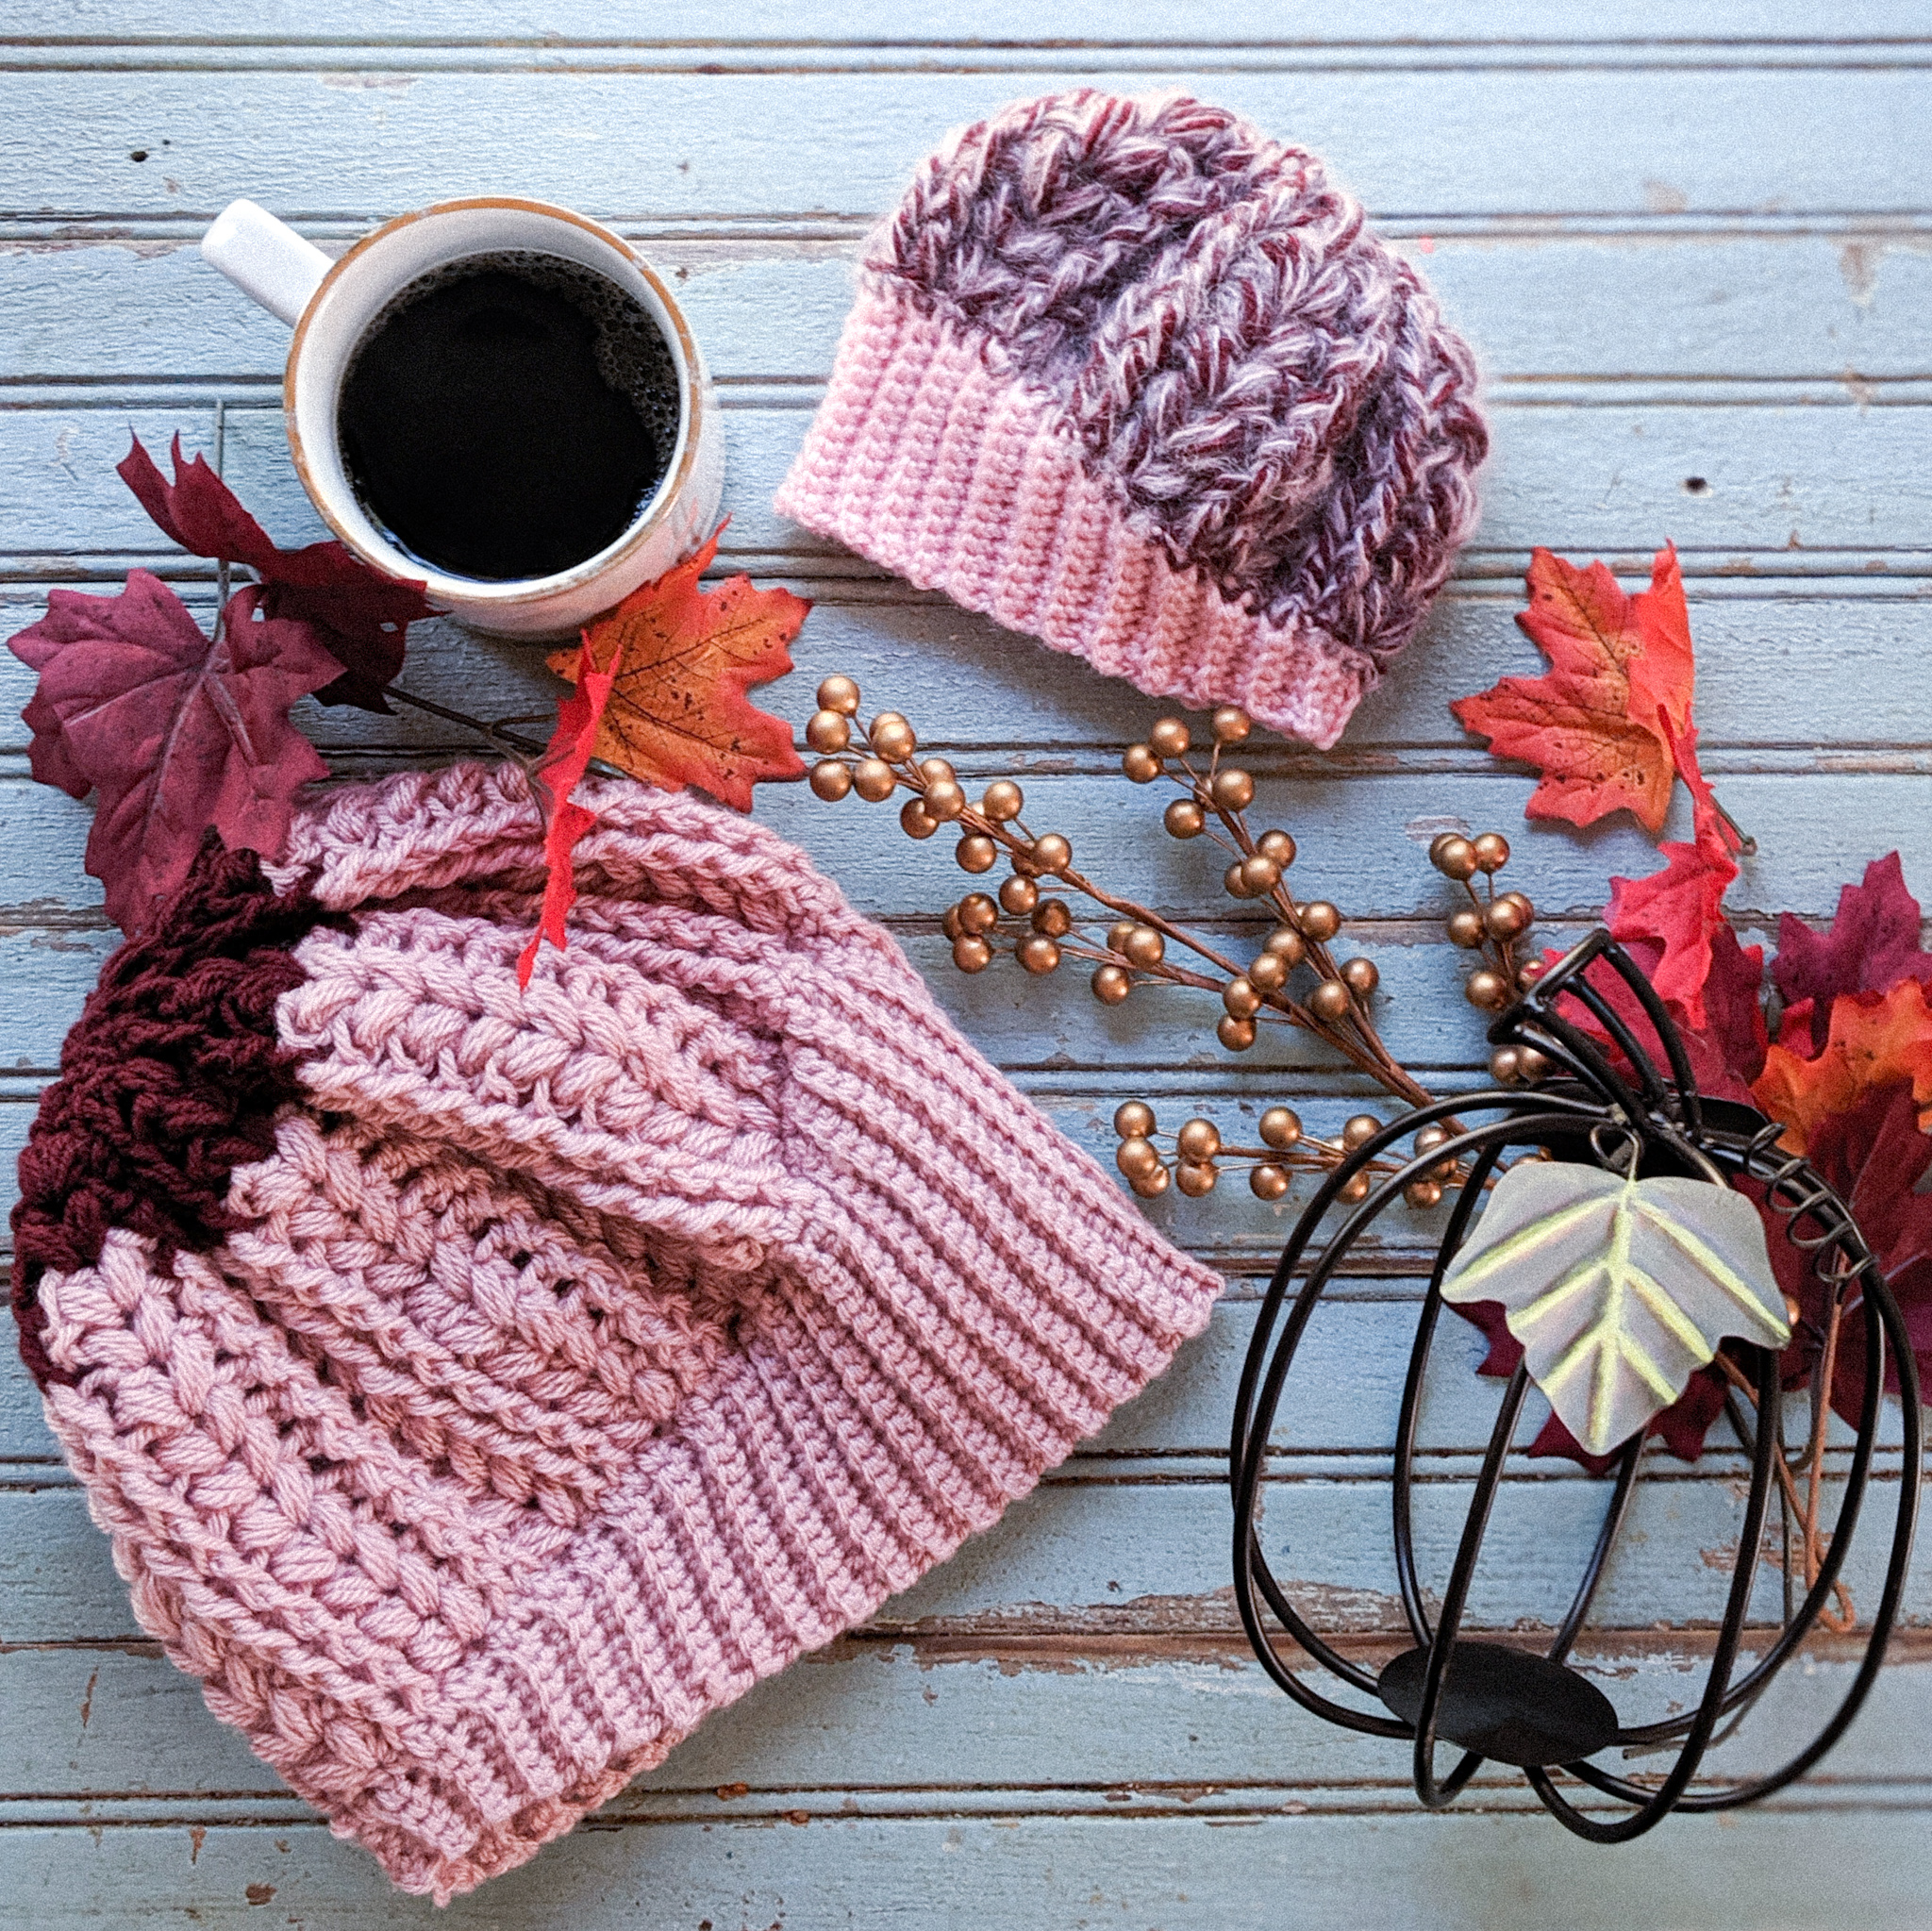 Purchase the Premium Pattern - Click to buy on Ravelry